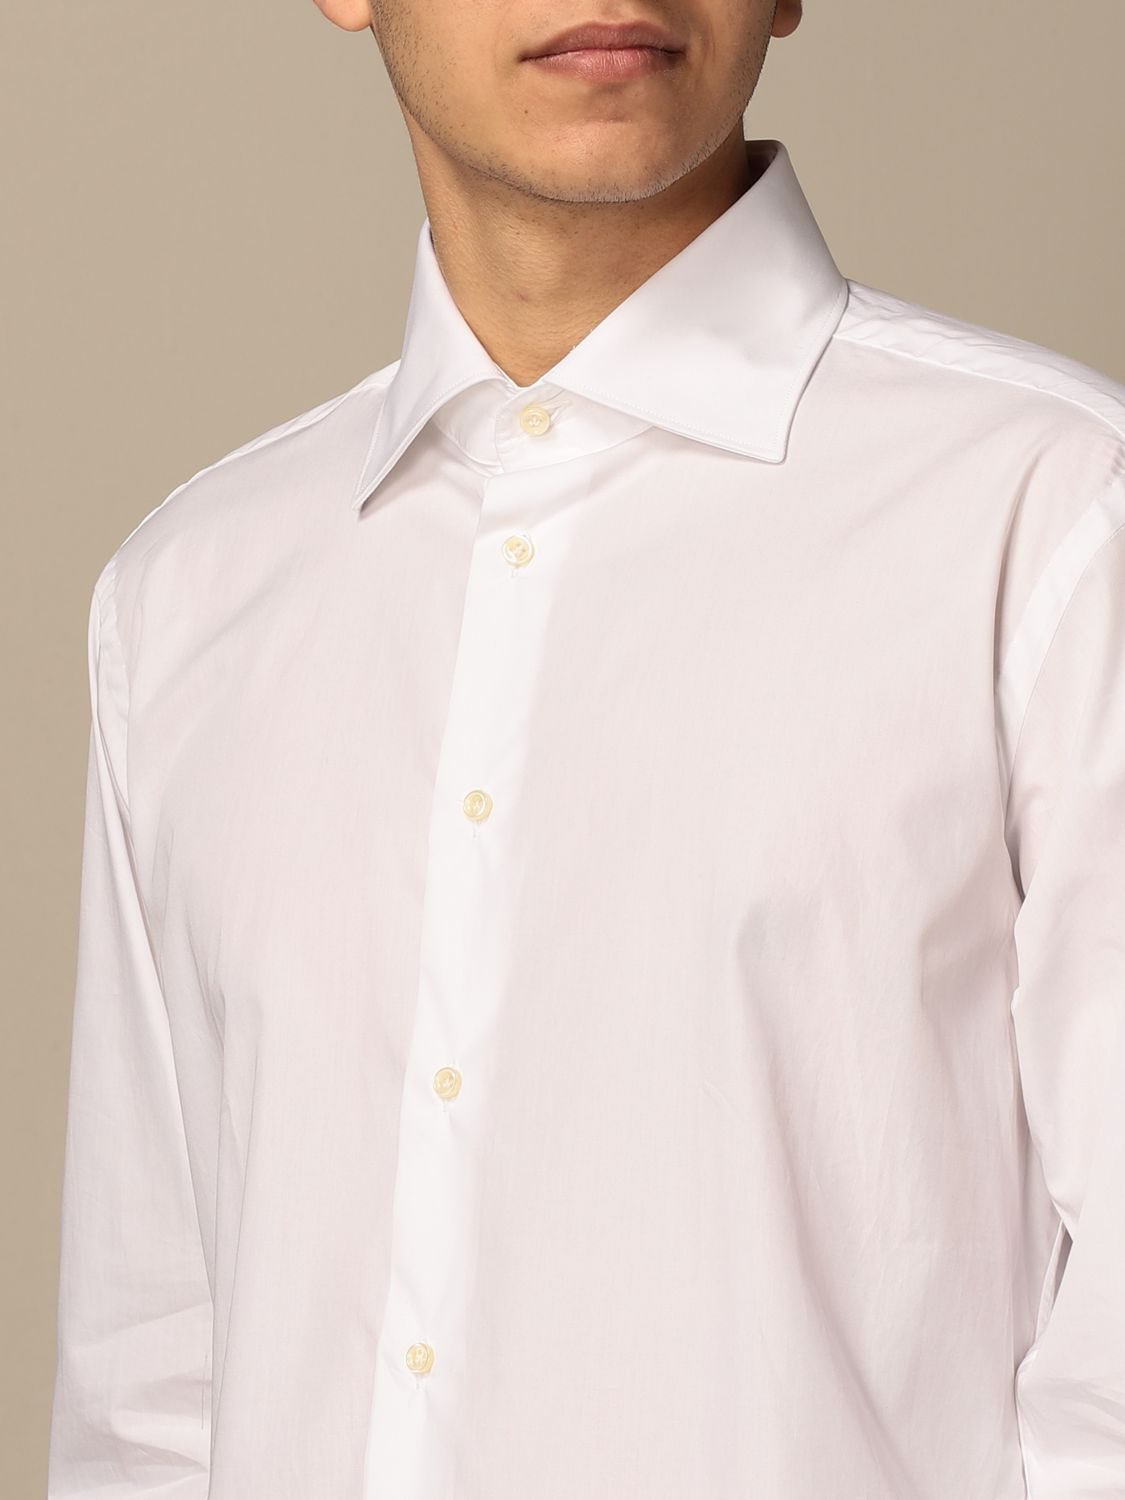 Shirt Brian Dales Camicie: Brian Dales Tailored Shirt Shirts with Italian collar in cotton white 3